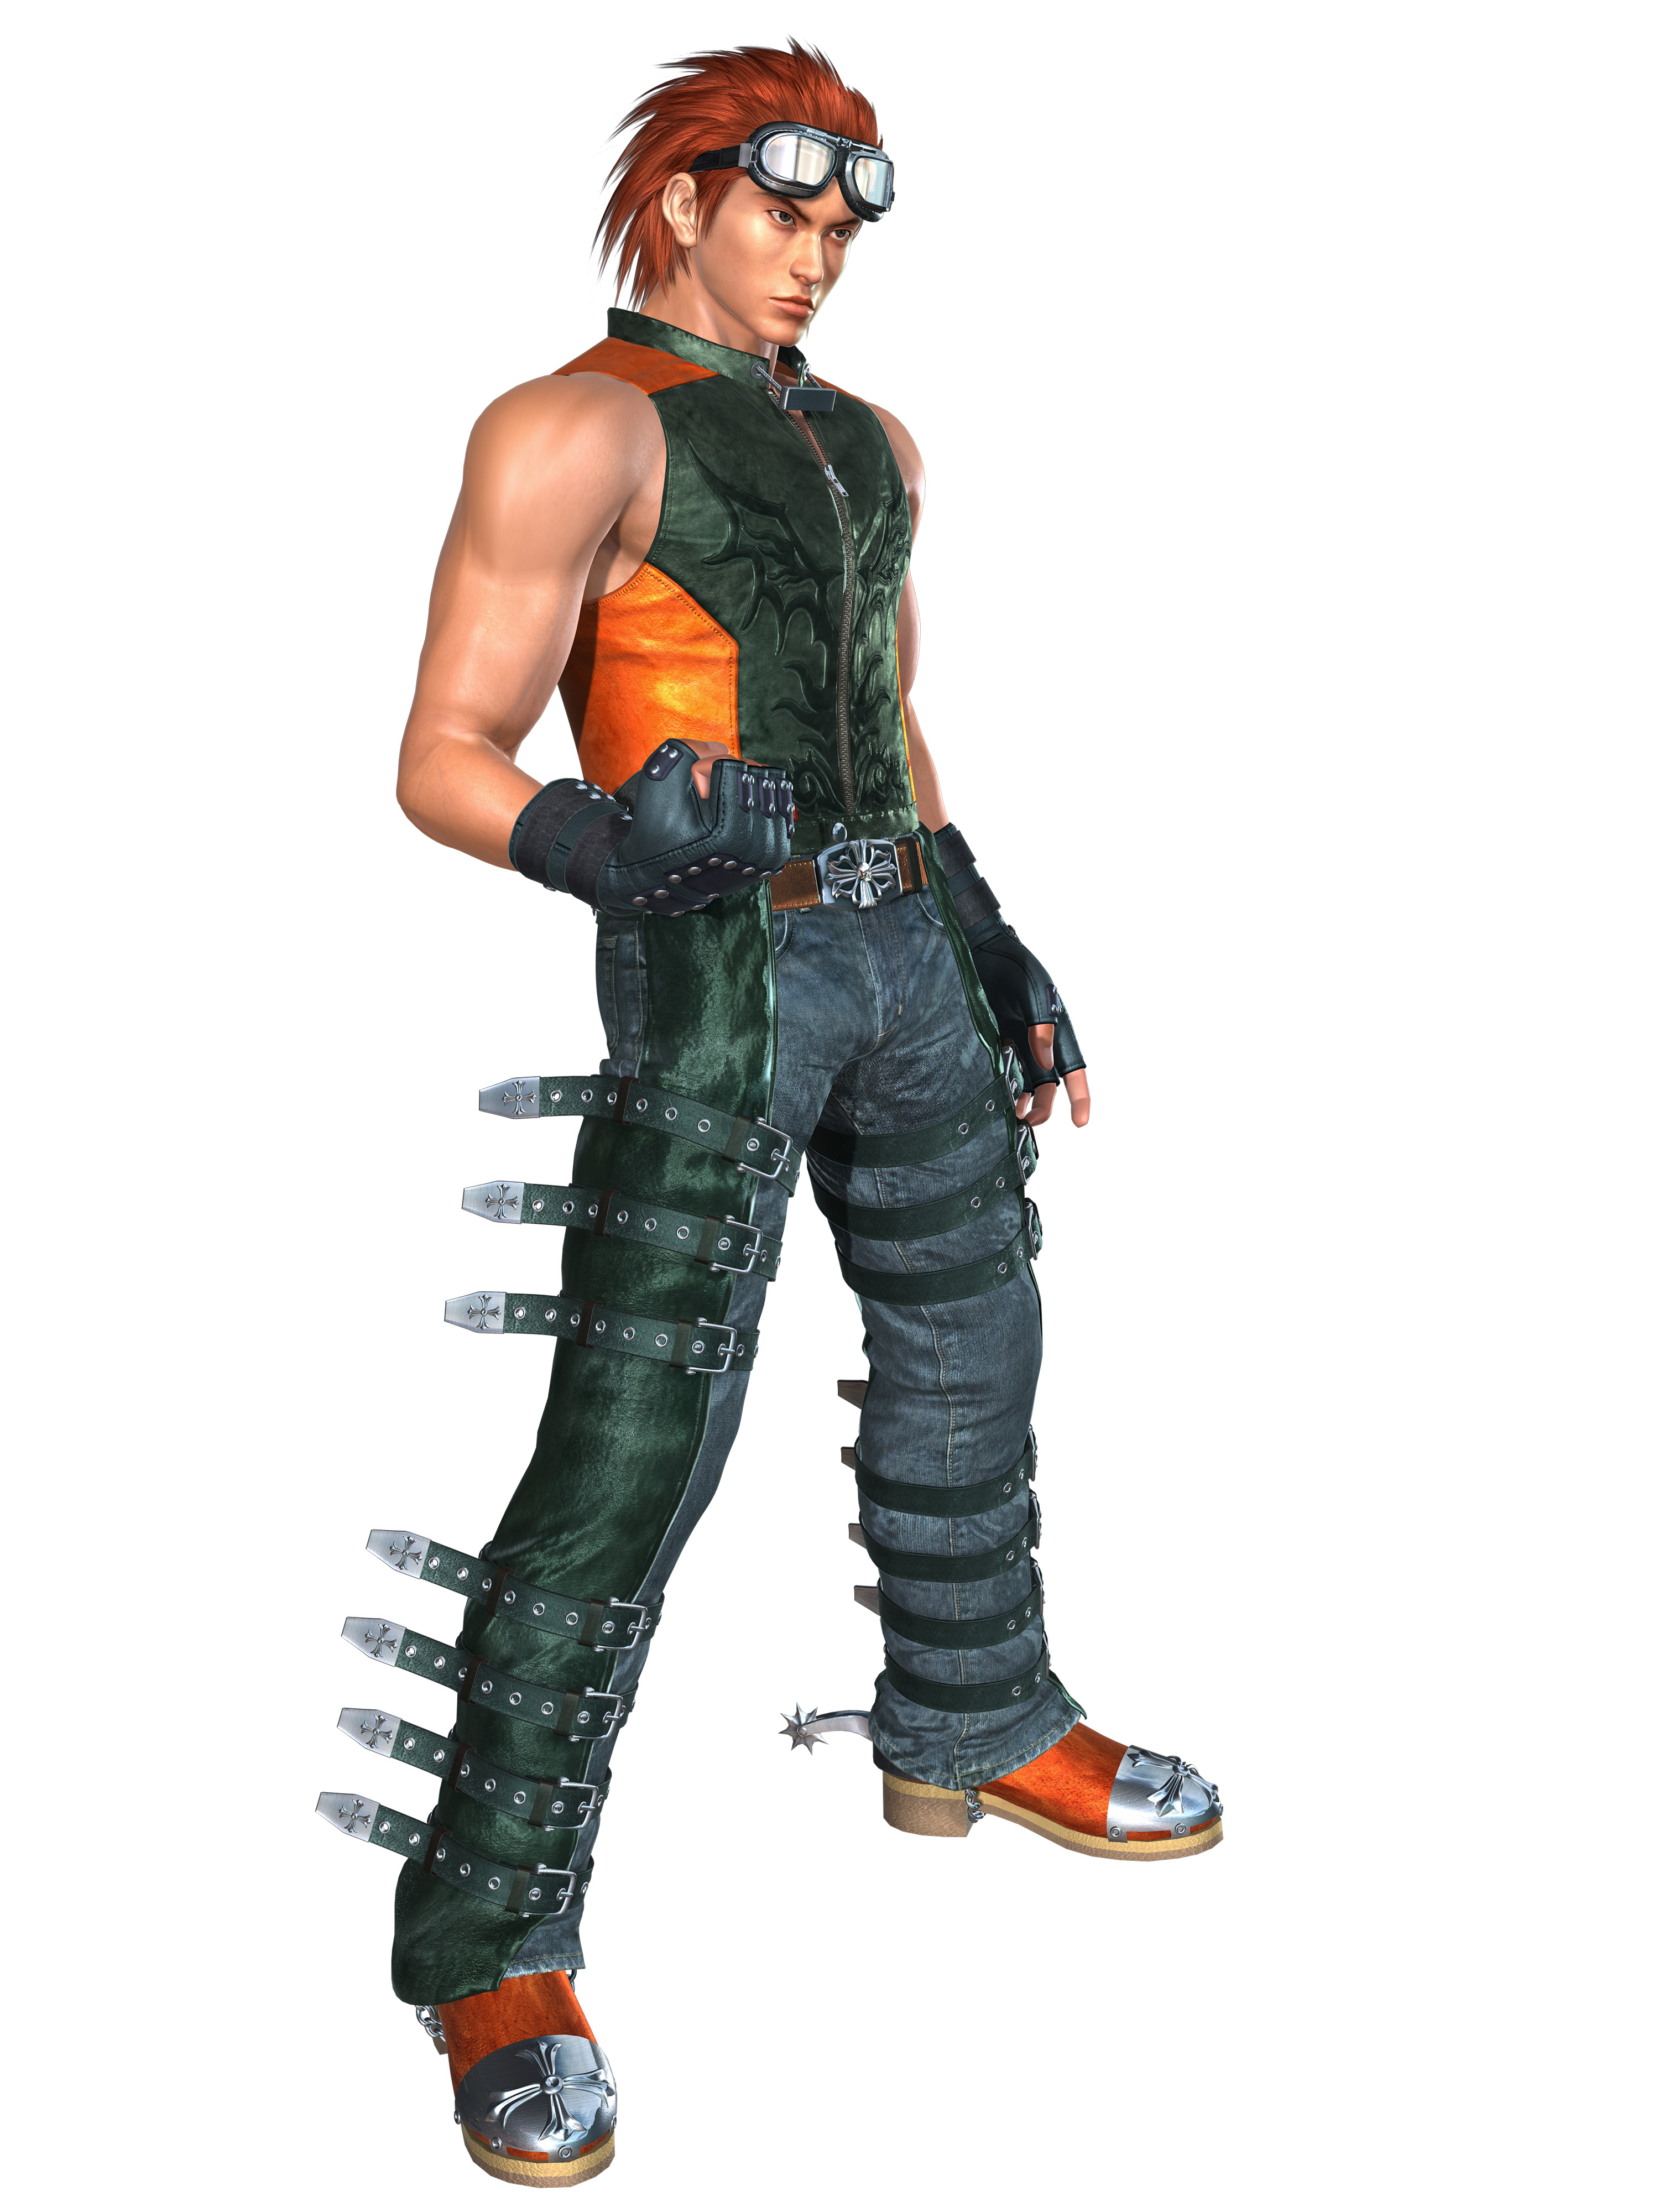 Hwoarang - The Tekken Wiki - Tekken 6, Tekken 5, Tekken 3, and more